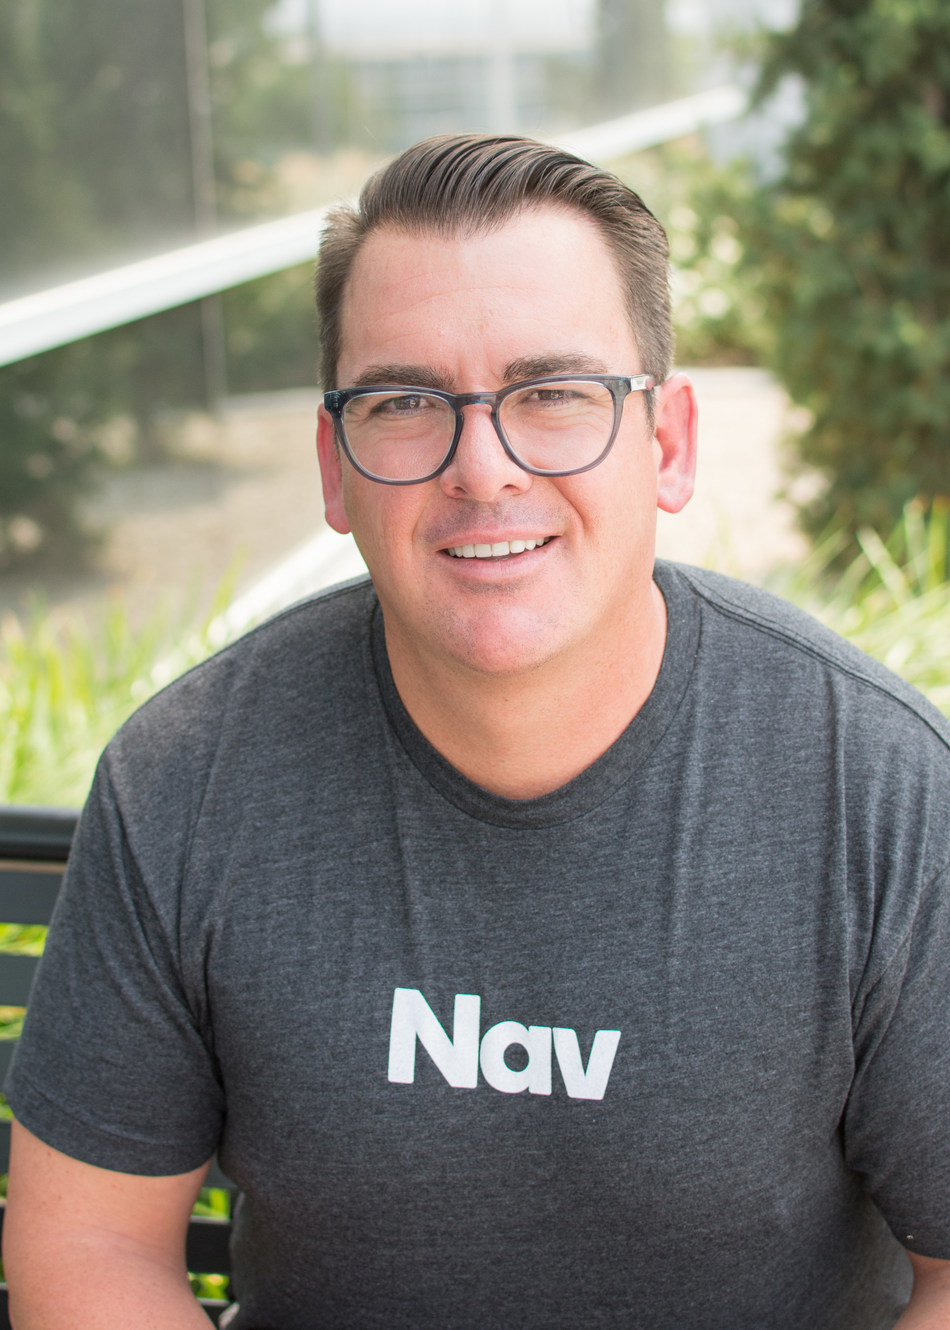 Levi King, the CEO and Co-Founder of Nav, is a self-taught, serial entrepreneur who has started seven different small businesses in the last 20 years.